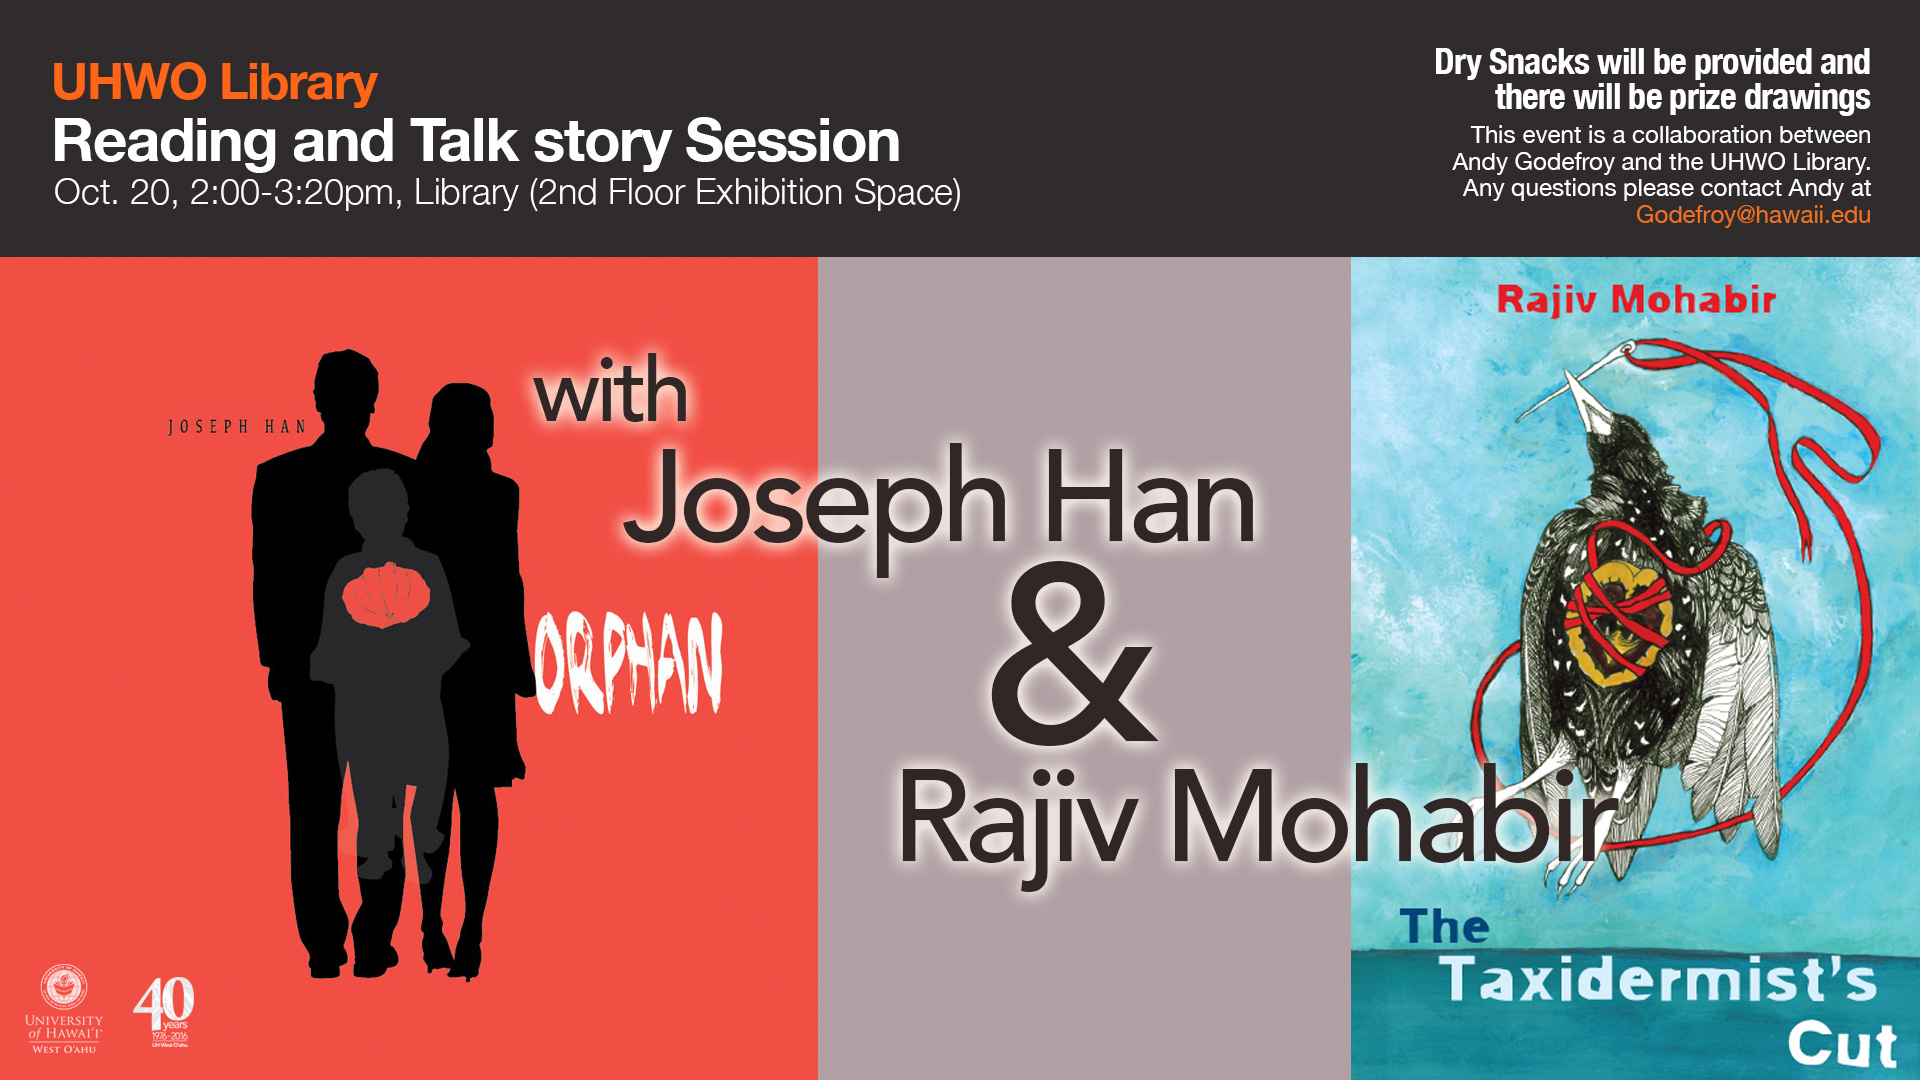 Library Reading & Talk Story Session with Joseph Han and Rajiv Mohabir